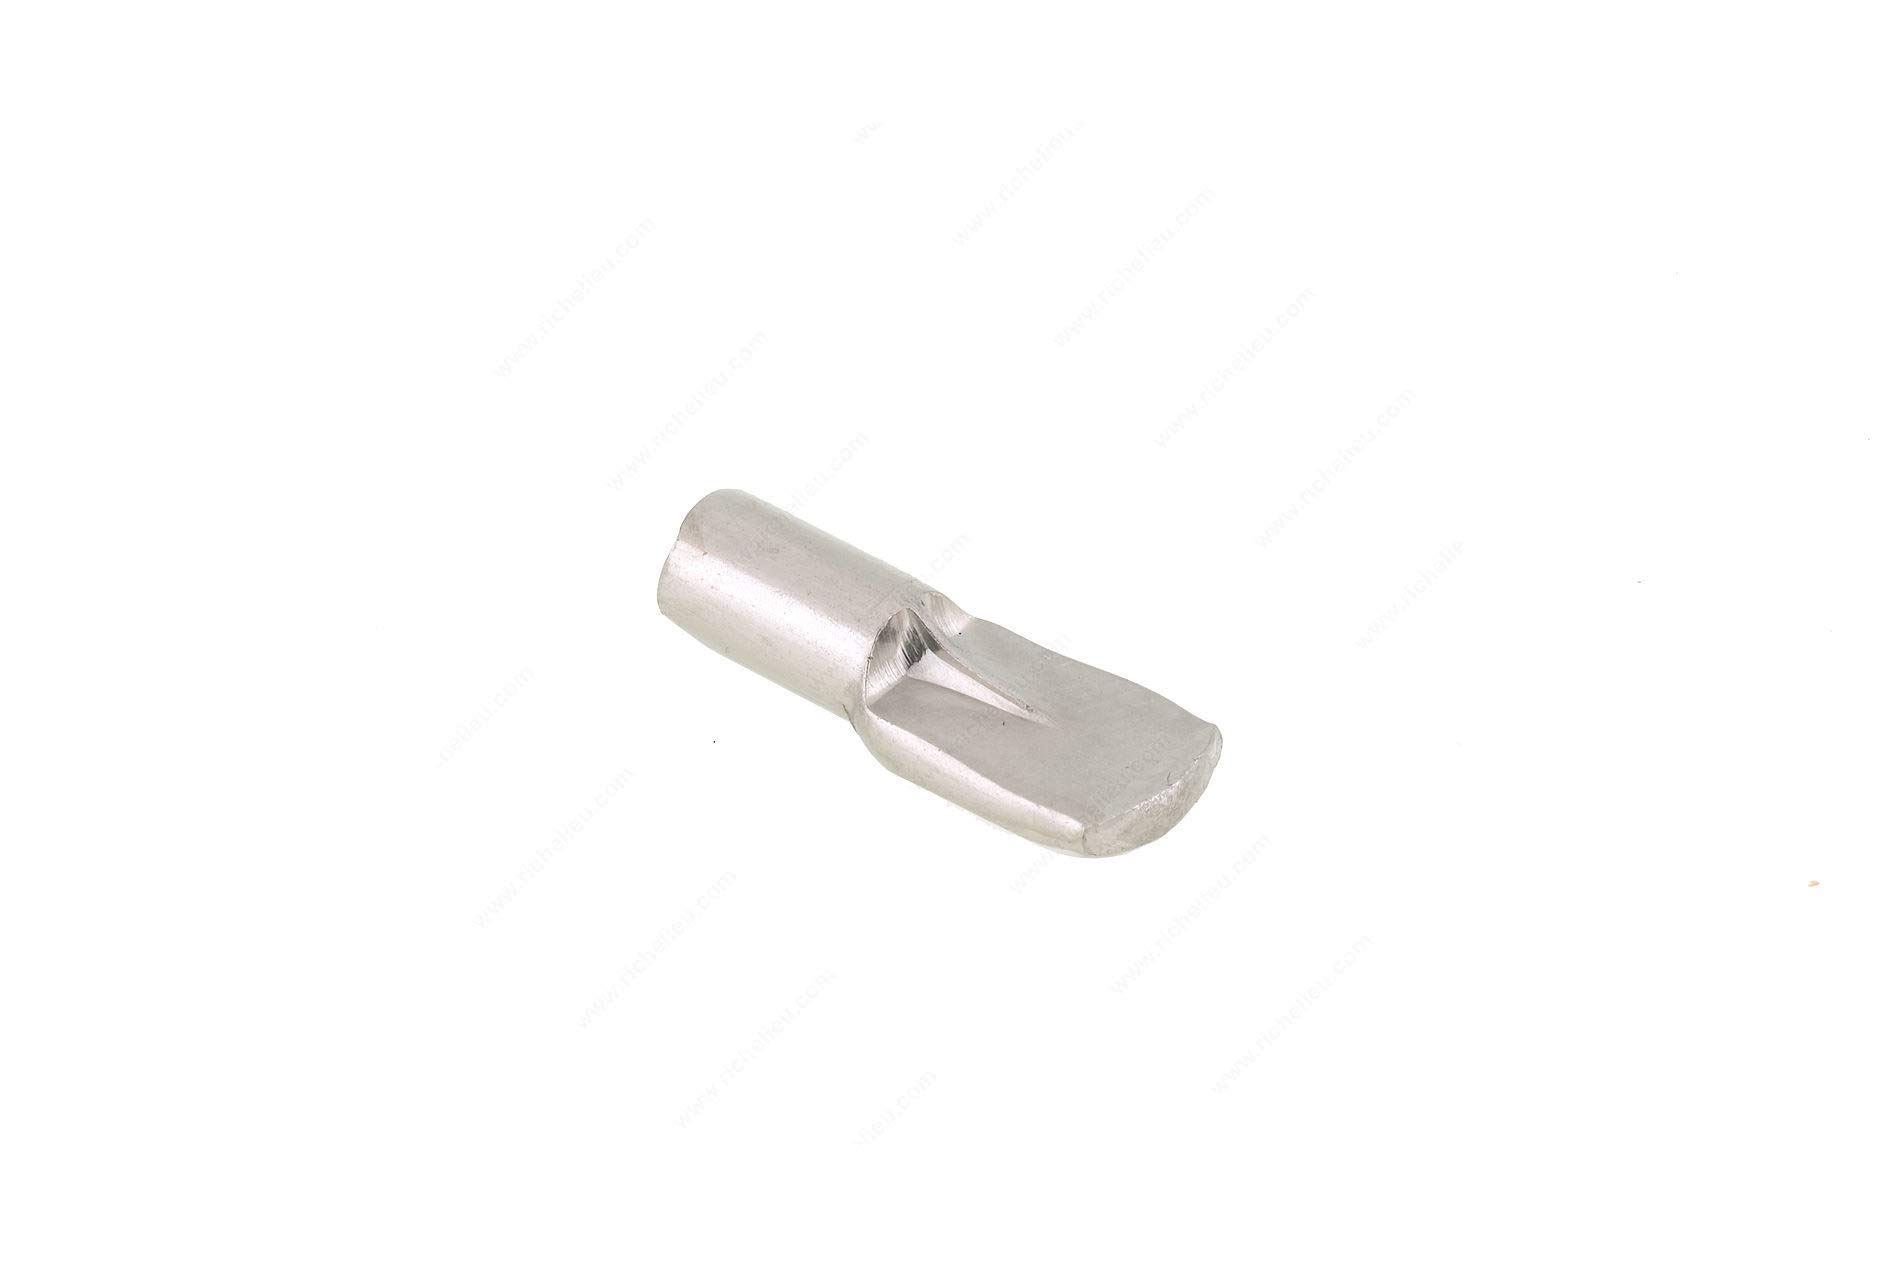 10pc Metal Shelf Pin with Stop, 3mm drill 1/8 in, Panel Thickness 16 mm, 19 mm, Load Capacity per Shelf 132 lb